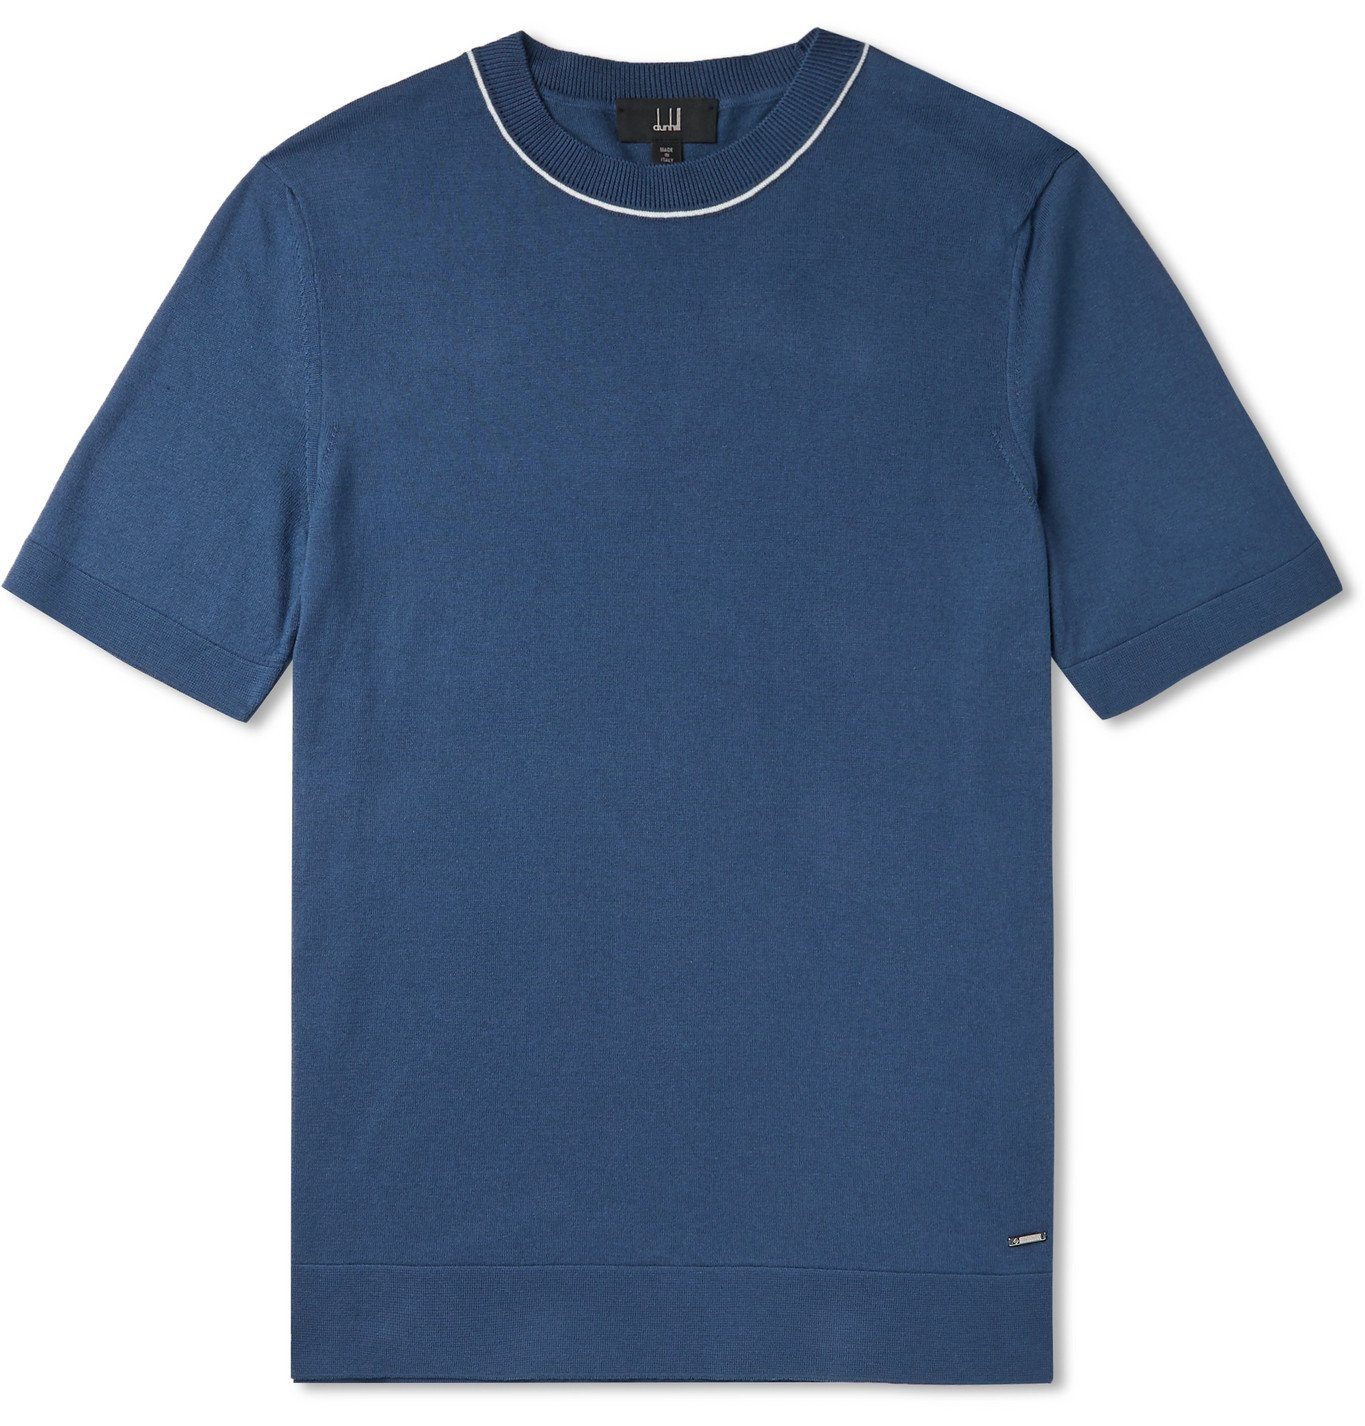 Dunhill - Contrast-Tipped Cotton T-Shirt - Blue